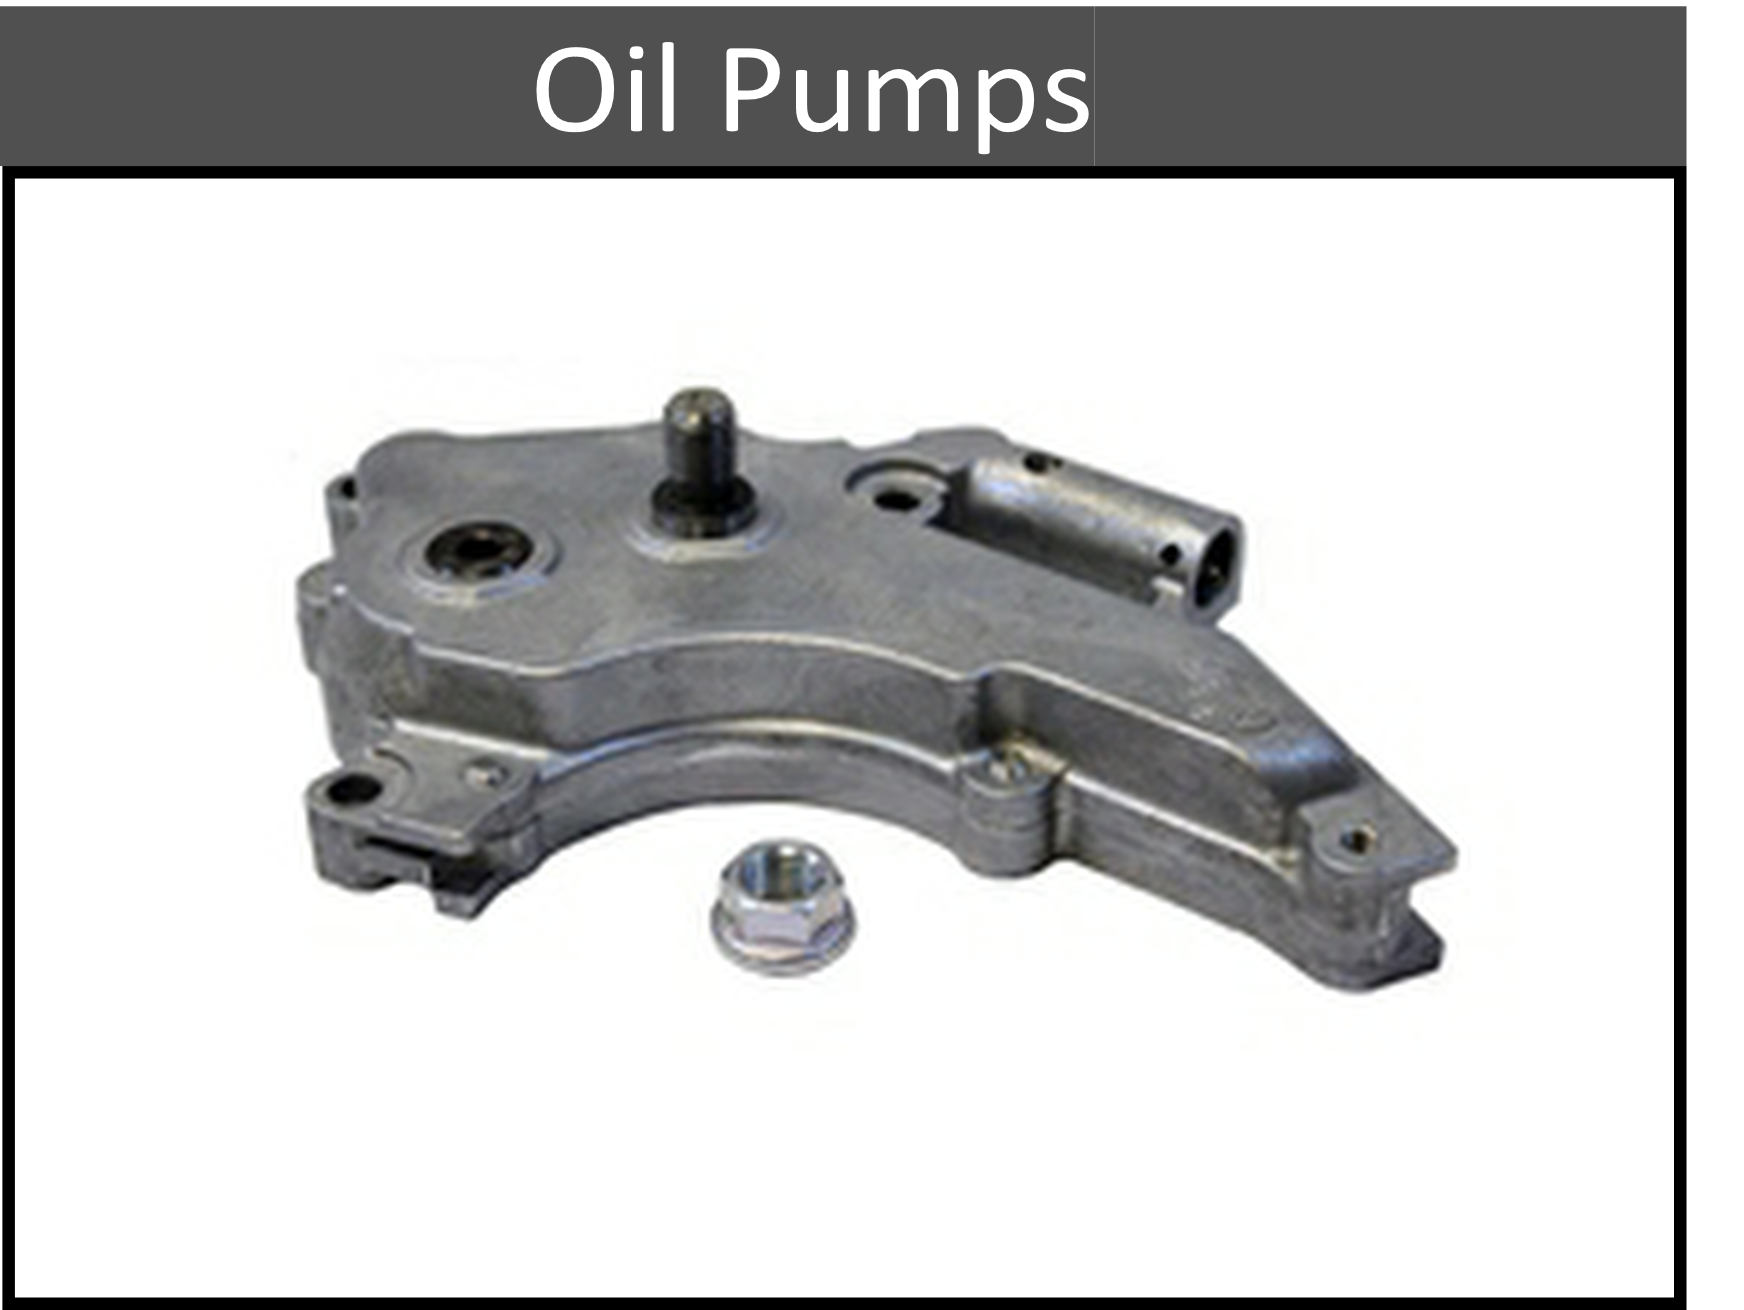 Engine Lubrication Oil Pumps